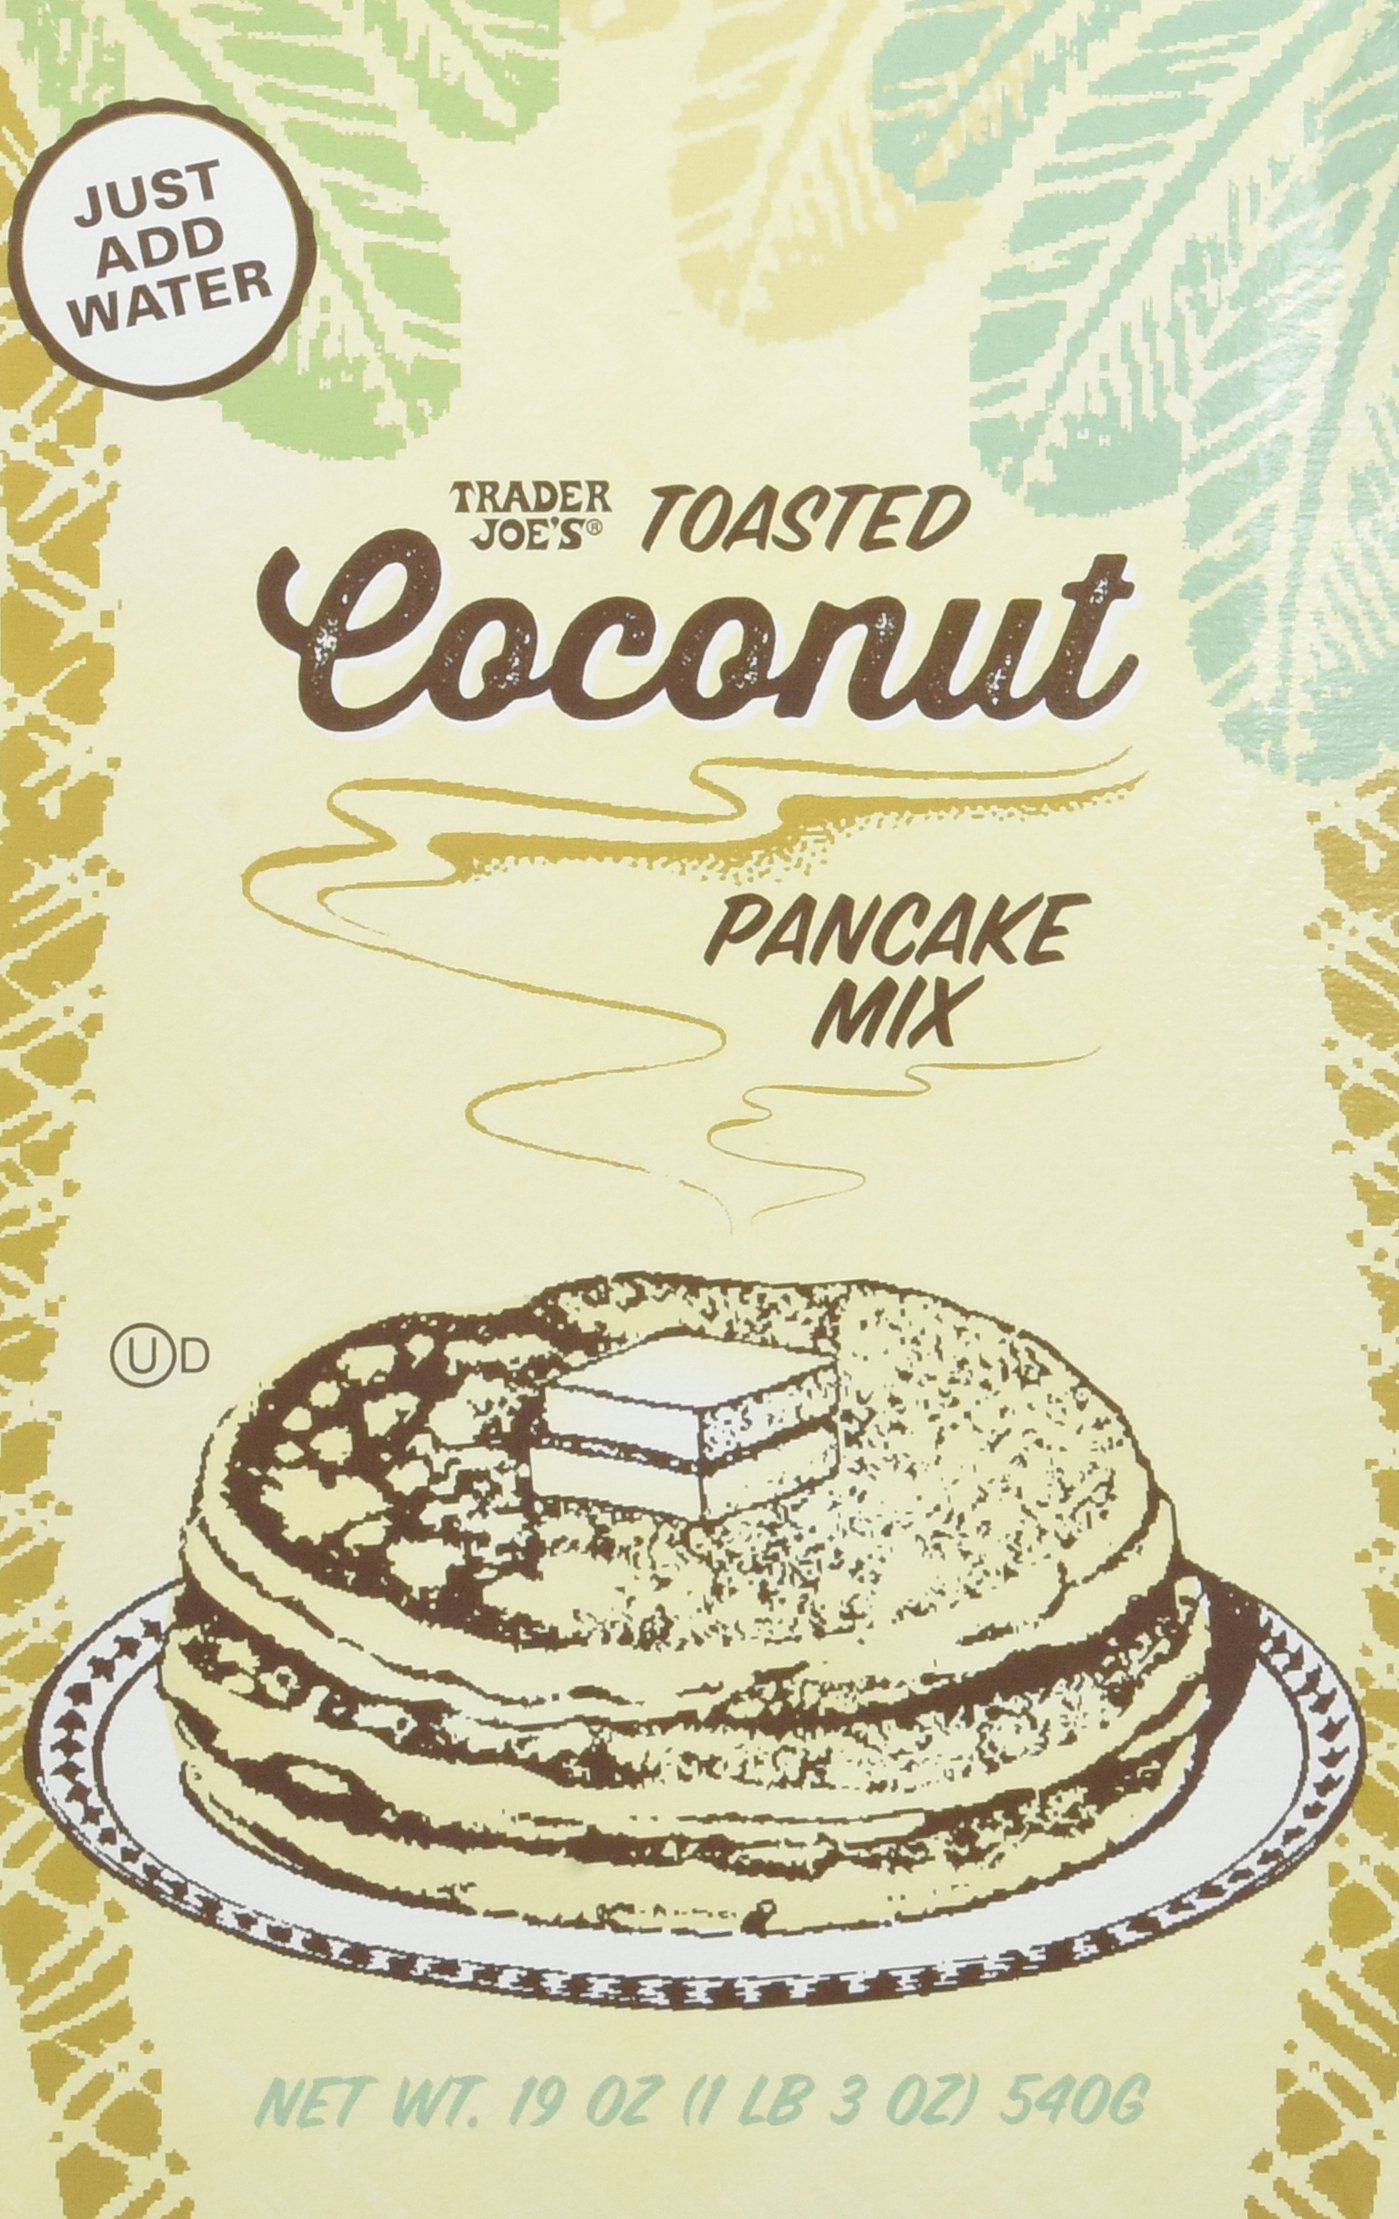 Trader Joes Toasted Coconut Pancake Mix 19oz